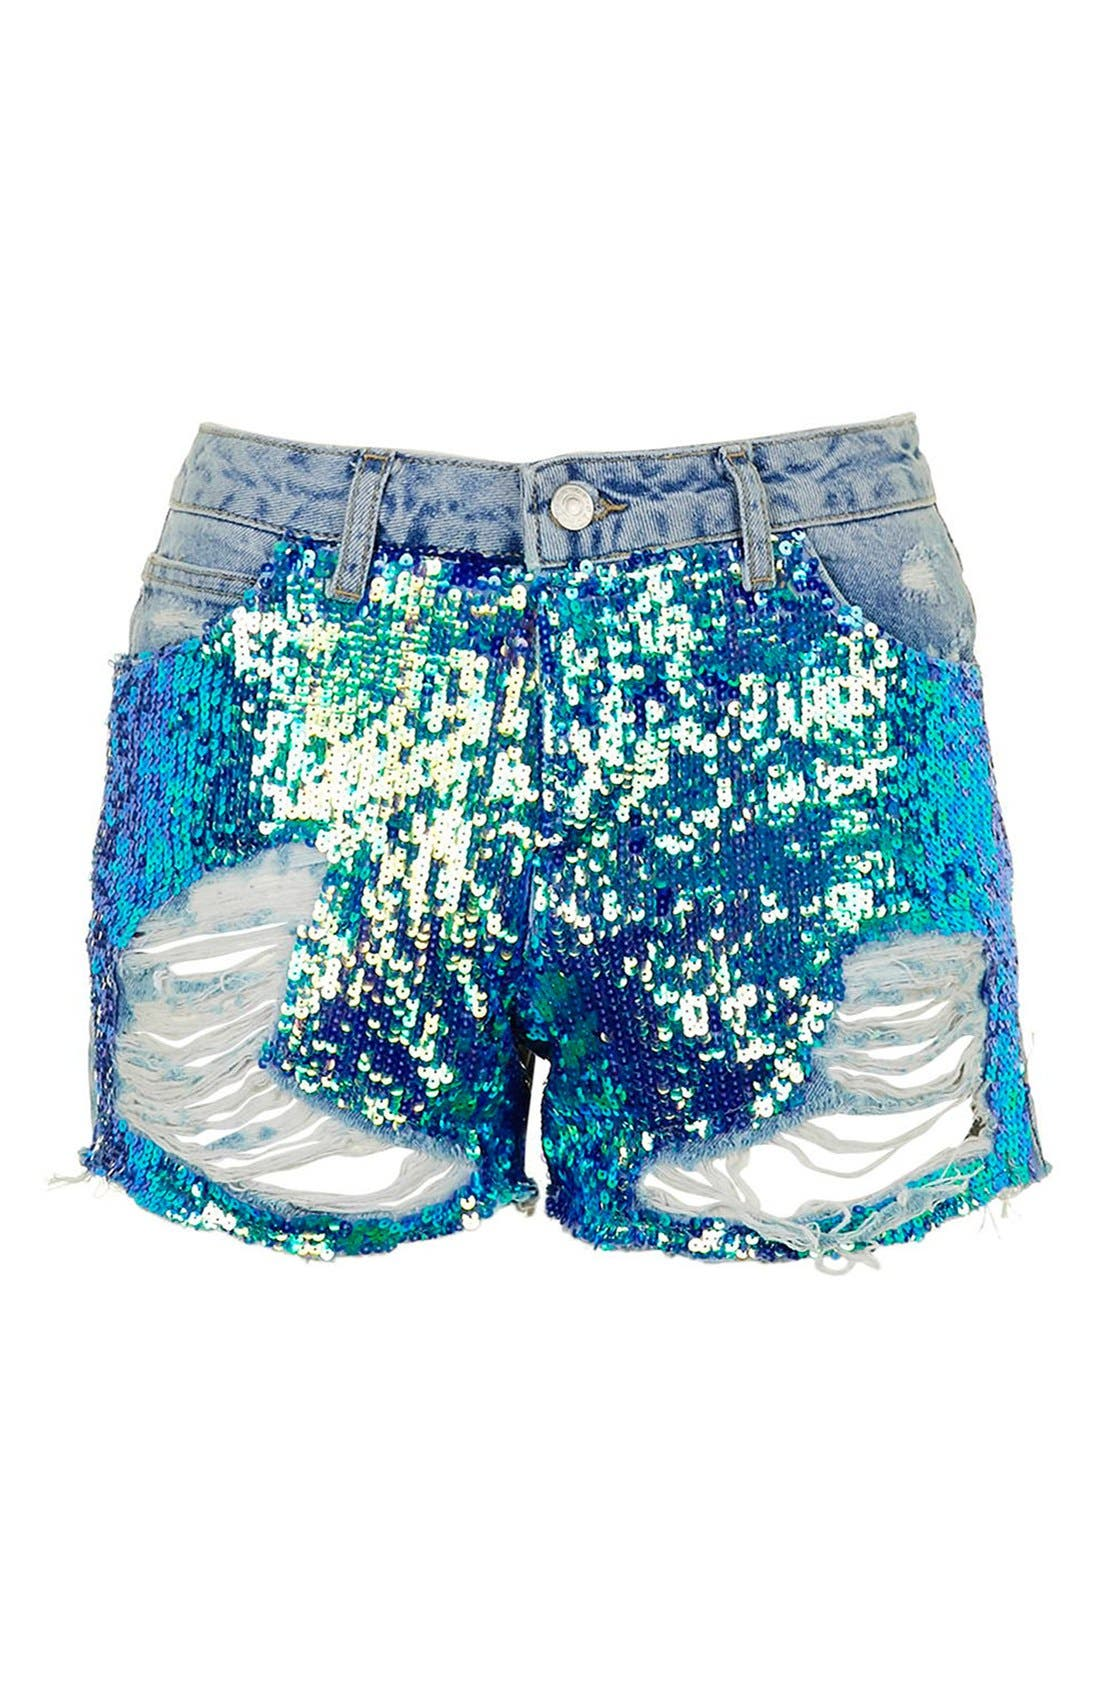 'Ashley' Sequin Cutoff Denim Shorts,                             Alternate thumbnail 2, color,                             400